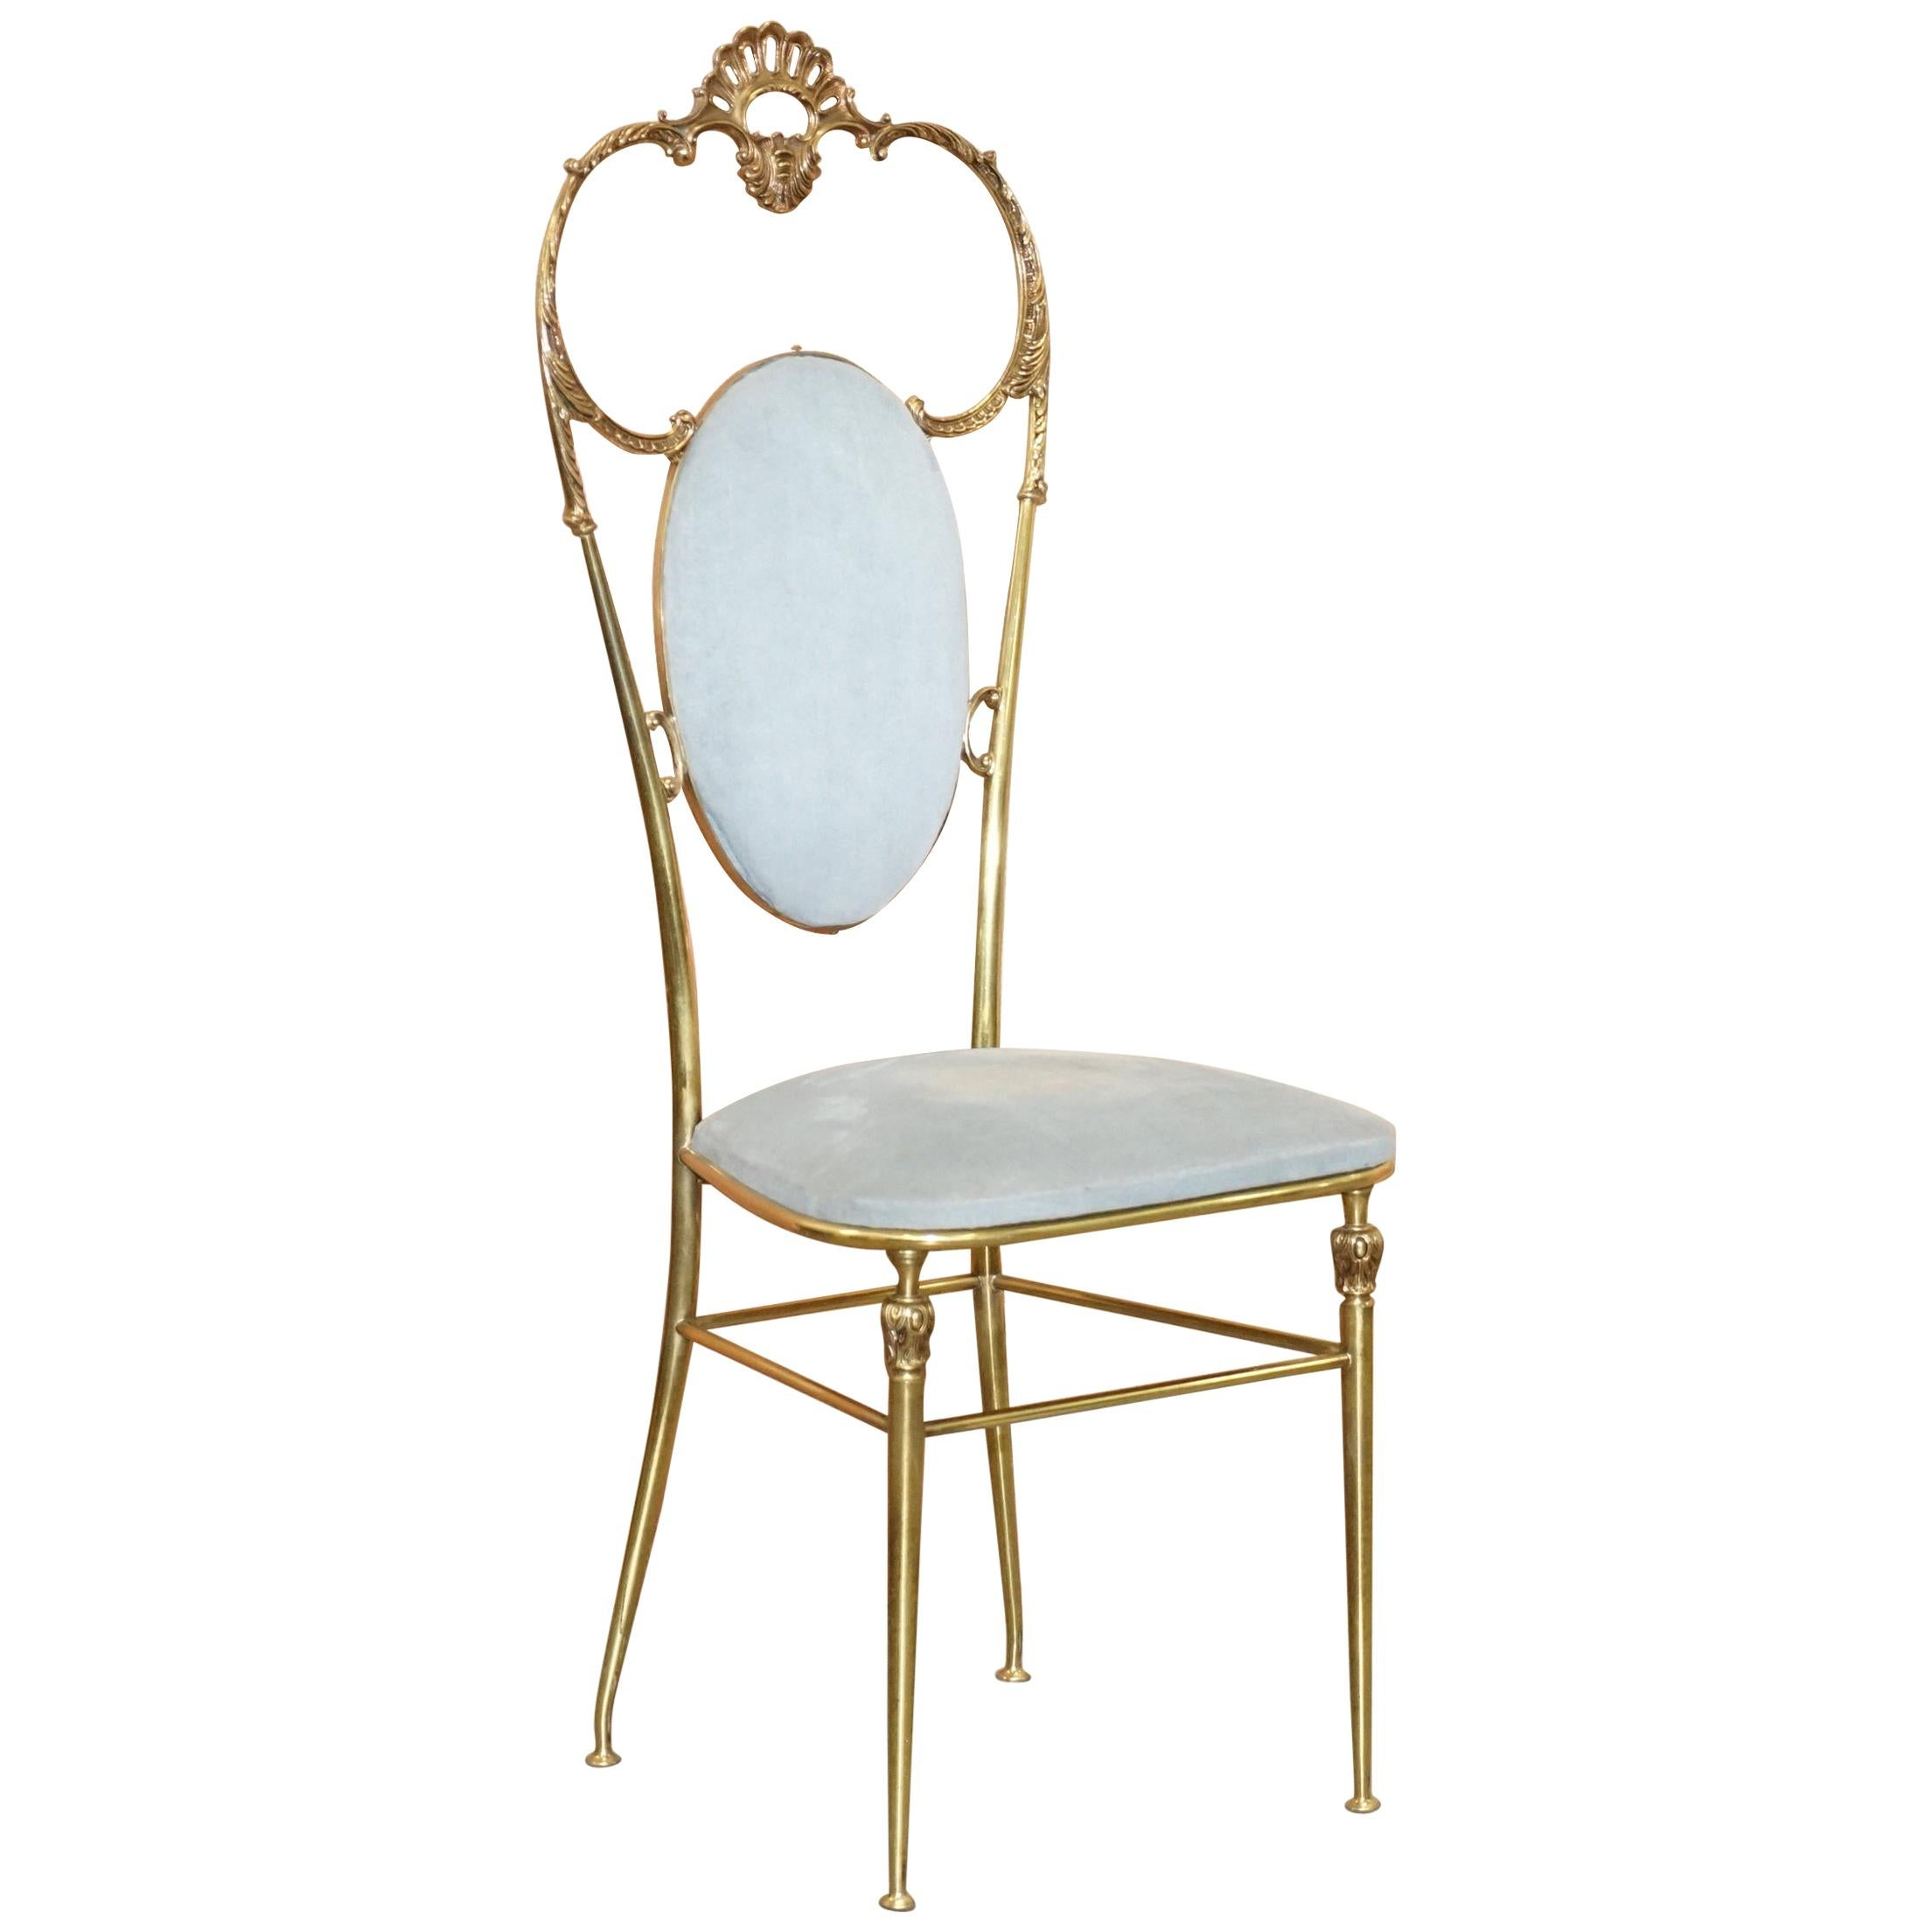 Exquisite Original 1930s Chiavari Hollywood Regency Brass Occasional Side Chair